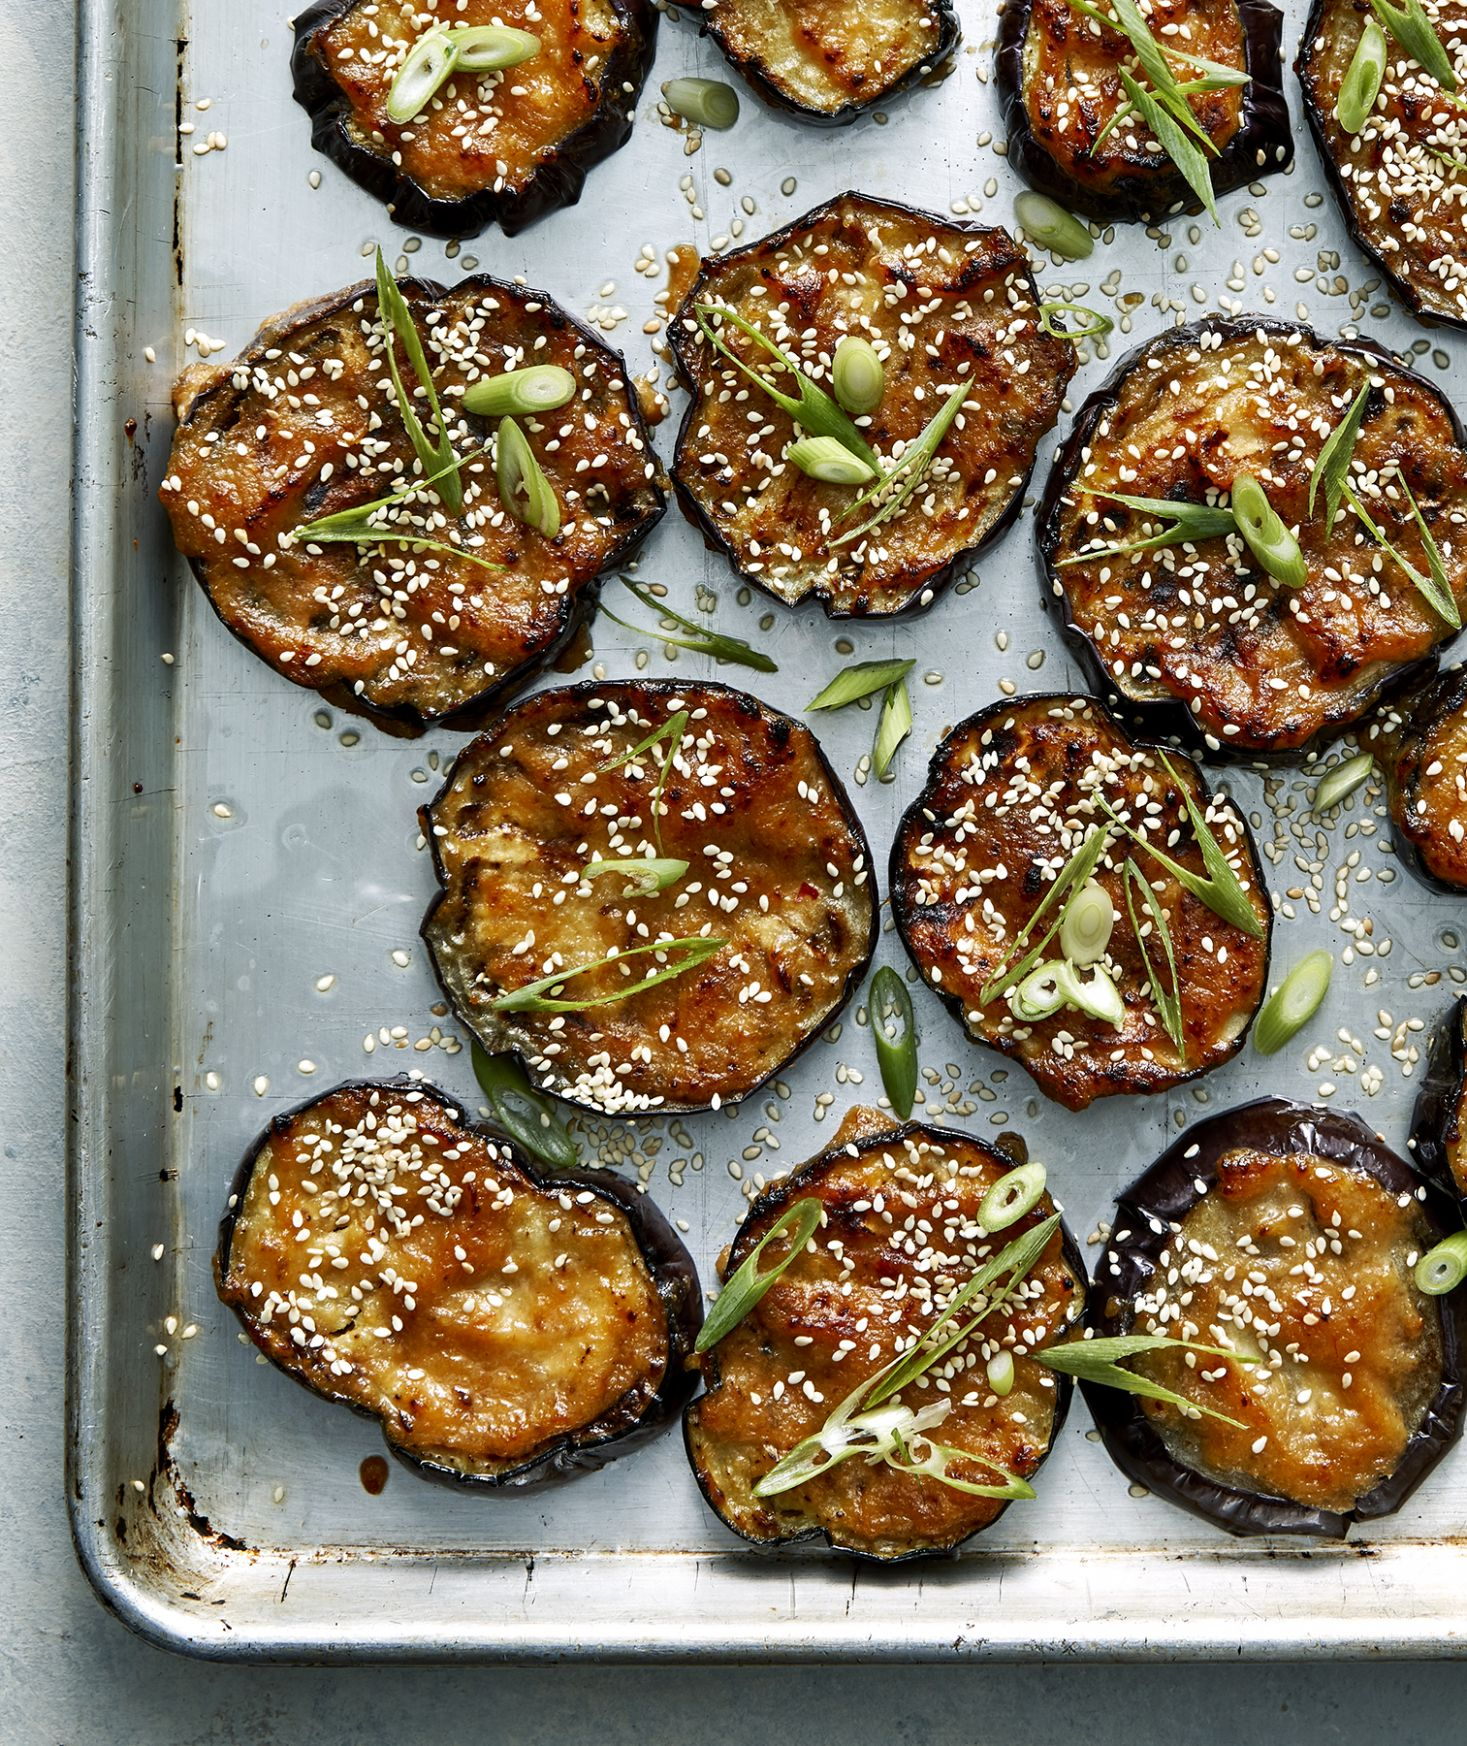 11 Easy Roasted Eggplant Recipes That Everyone Will Love | Real Simple - Easy Recipes Everyone Will Love